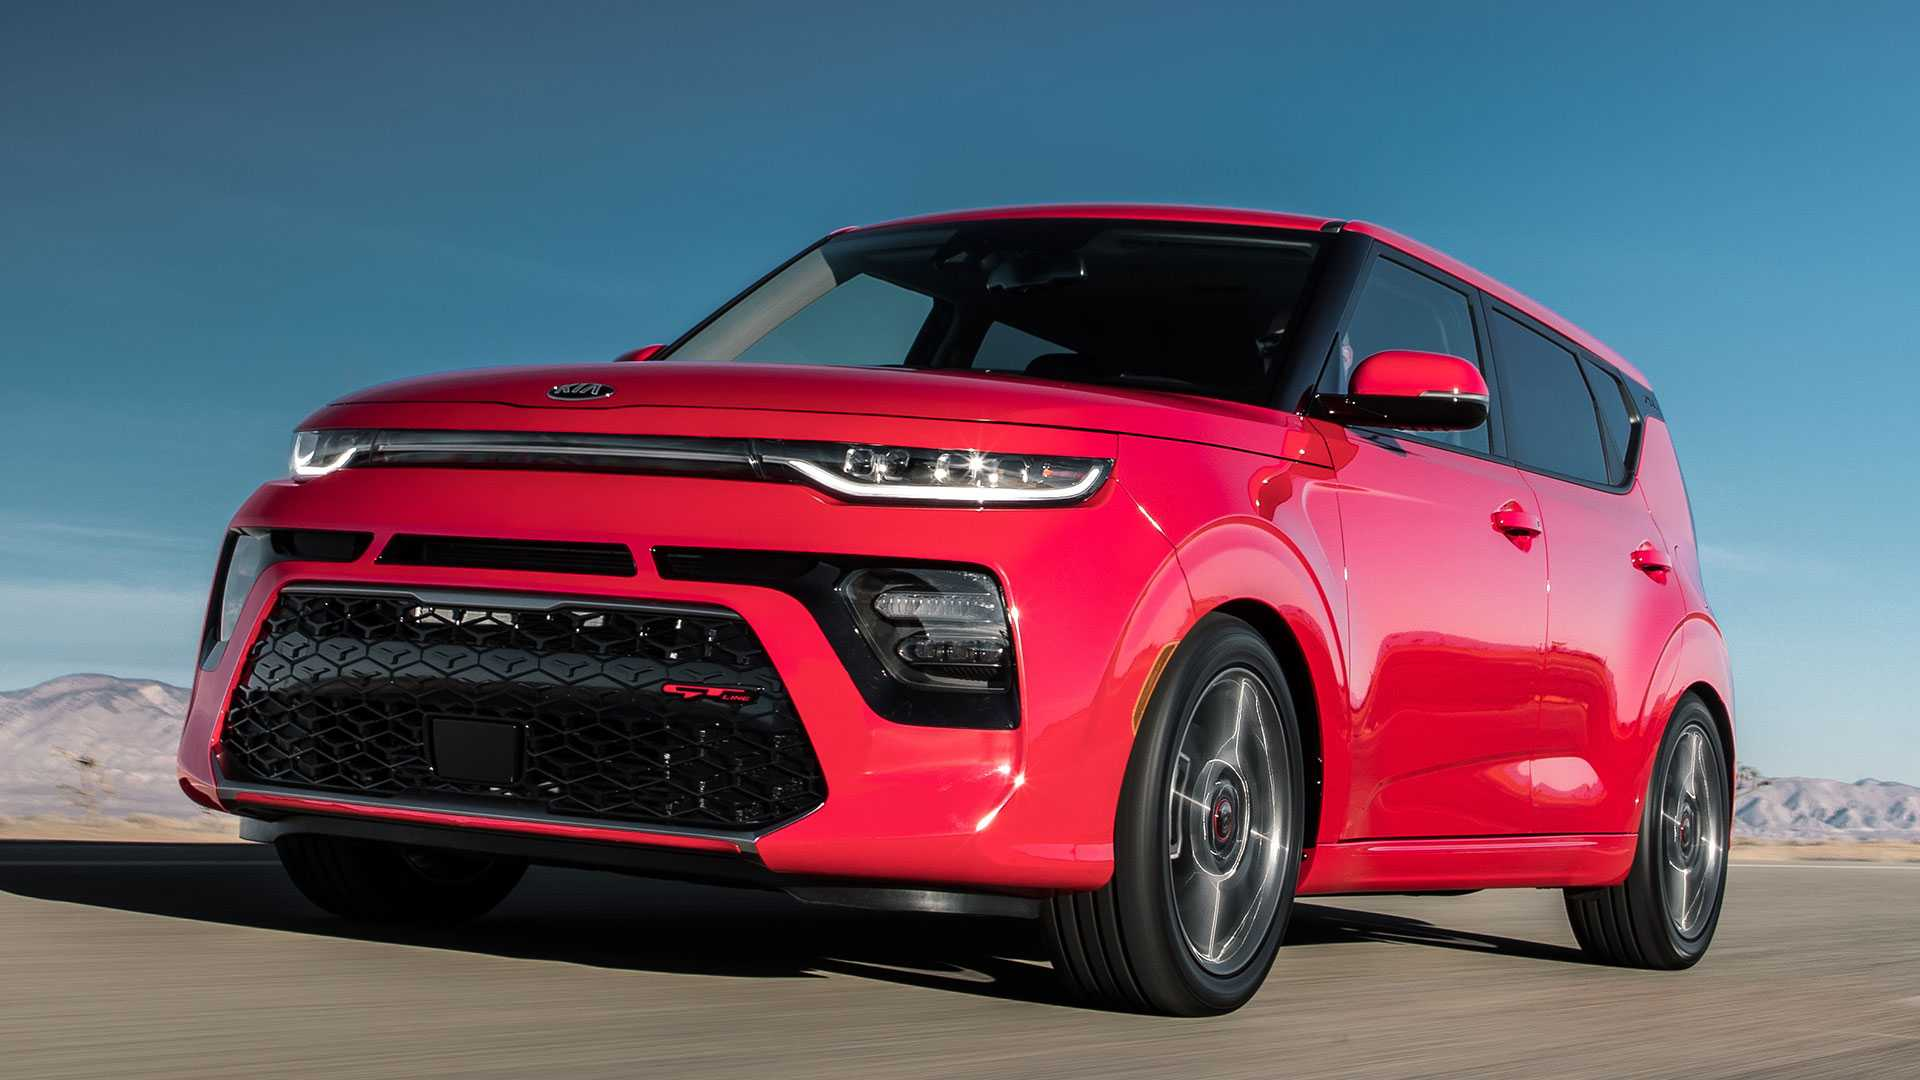 48 The Best Kia E Soul 2020 Price First Drive